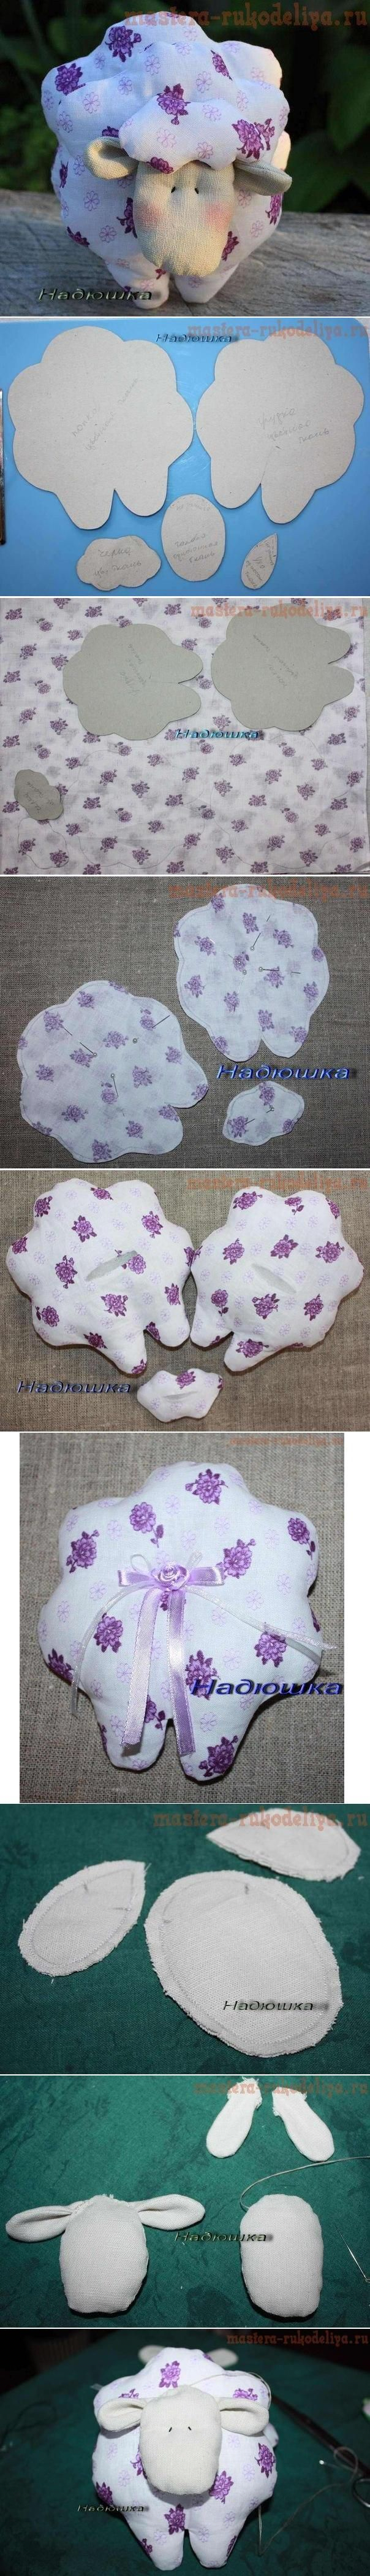 DIY Fabric Sheep Toy DIY Projects